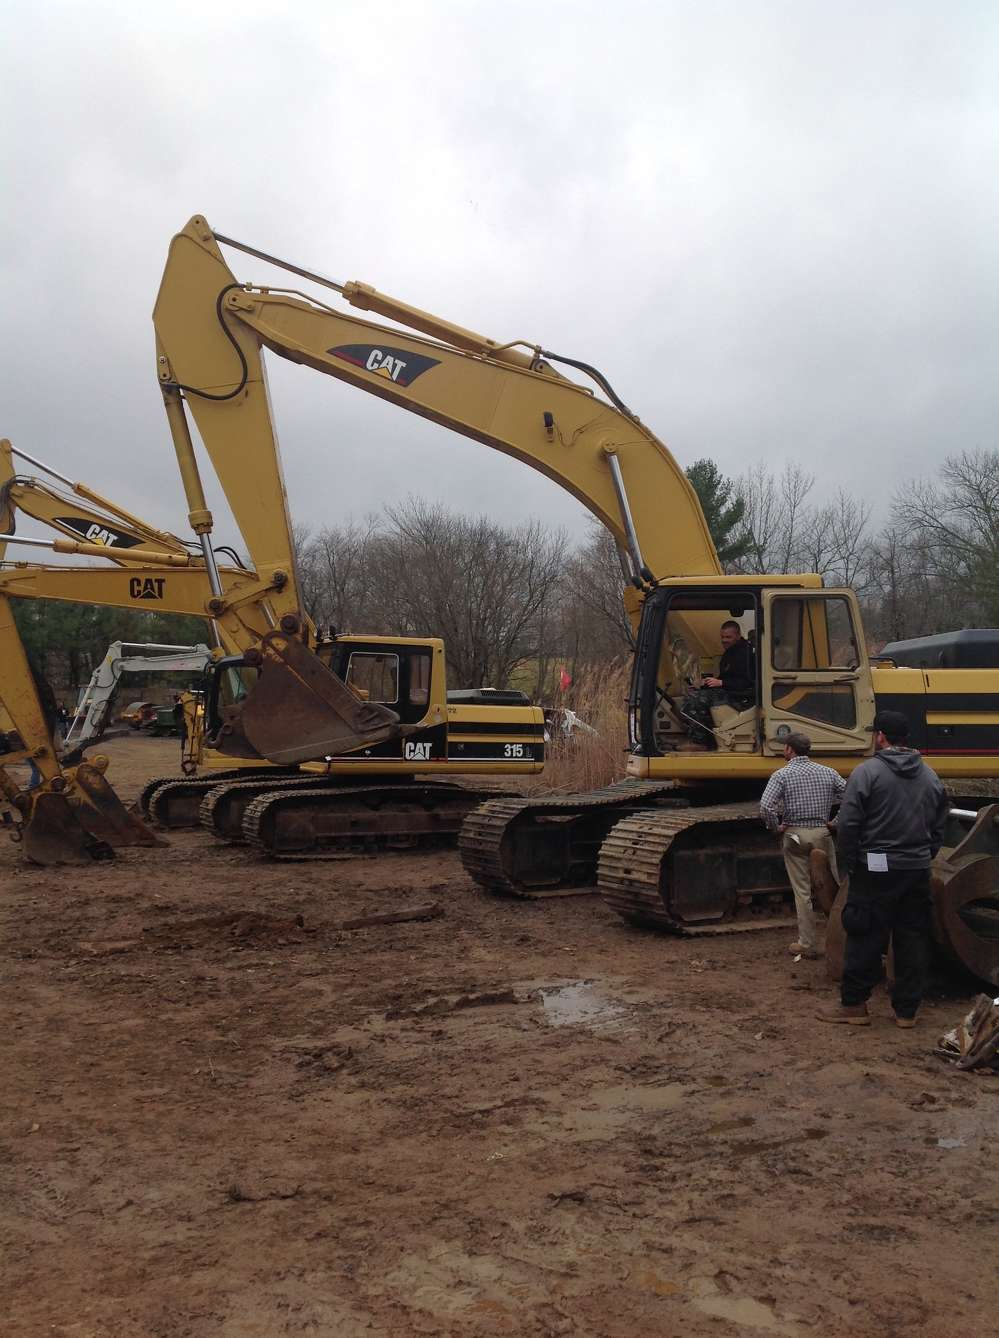 John Vancleet, VC Land, Hillsboro, N.J., tests out this Cat 330L excavator before bidding on it.